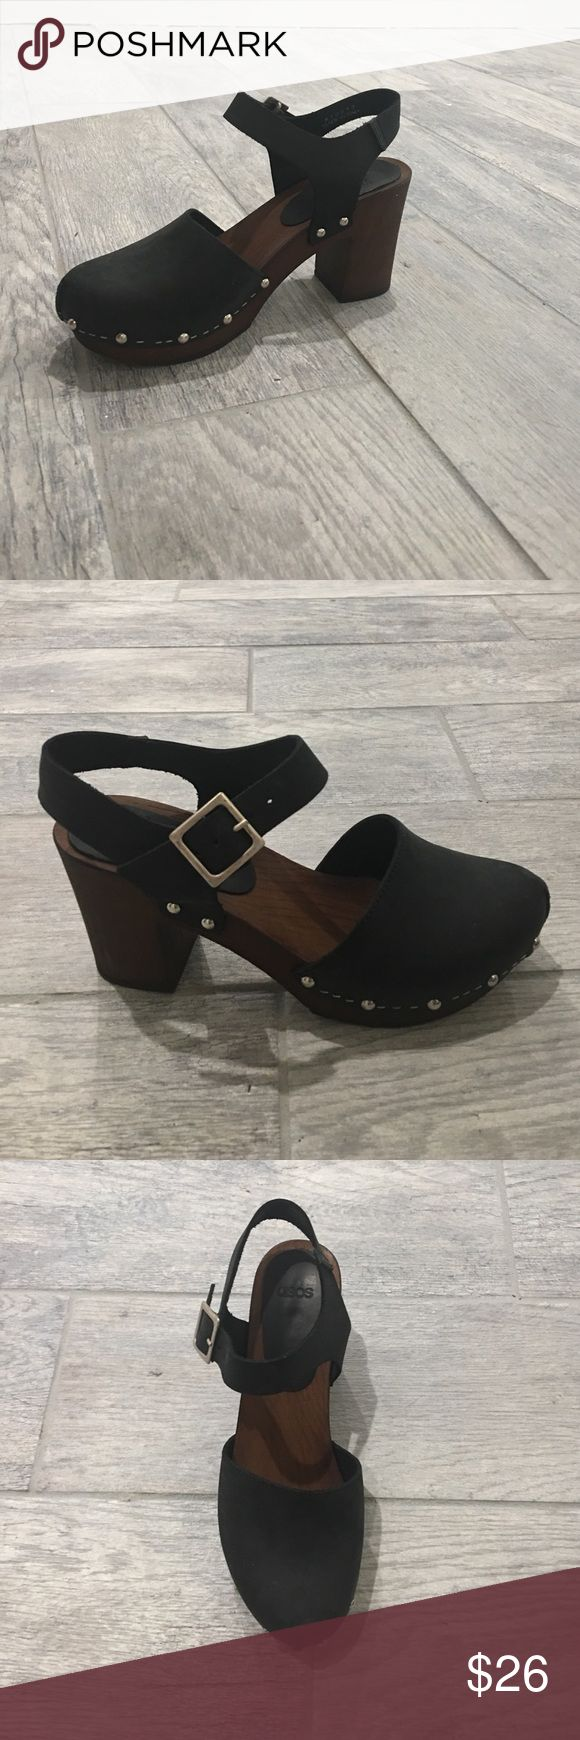 Black heeled clogs ASOS brand clogs. Just purchased this season, they're a little wide so if you wear a 7, they'll be closer to a 7.5 women's. They're adorable and not too tall! ASOS Shoes Mules & Clogs